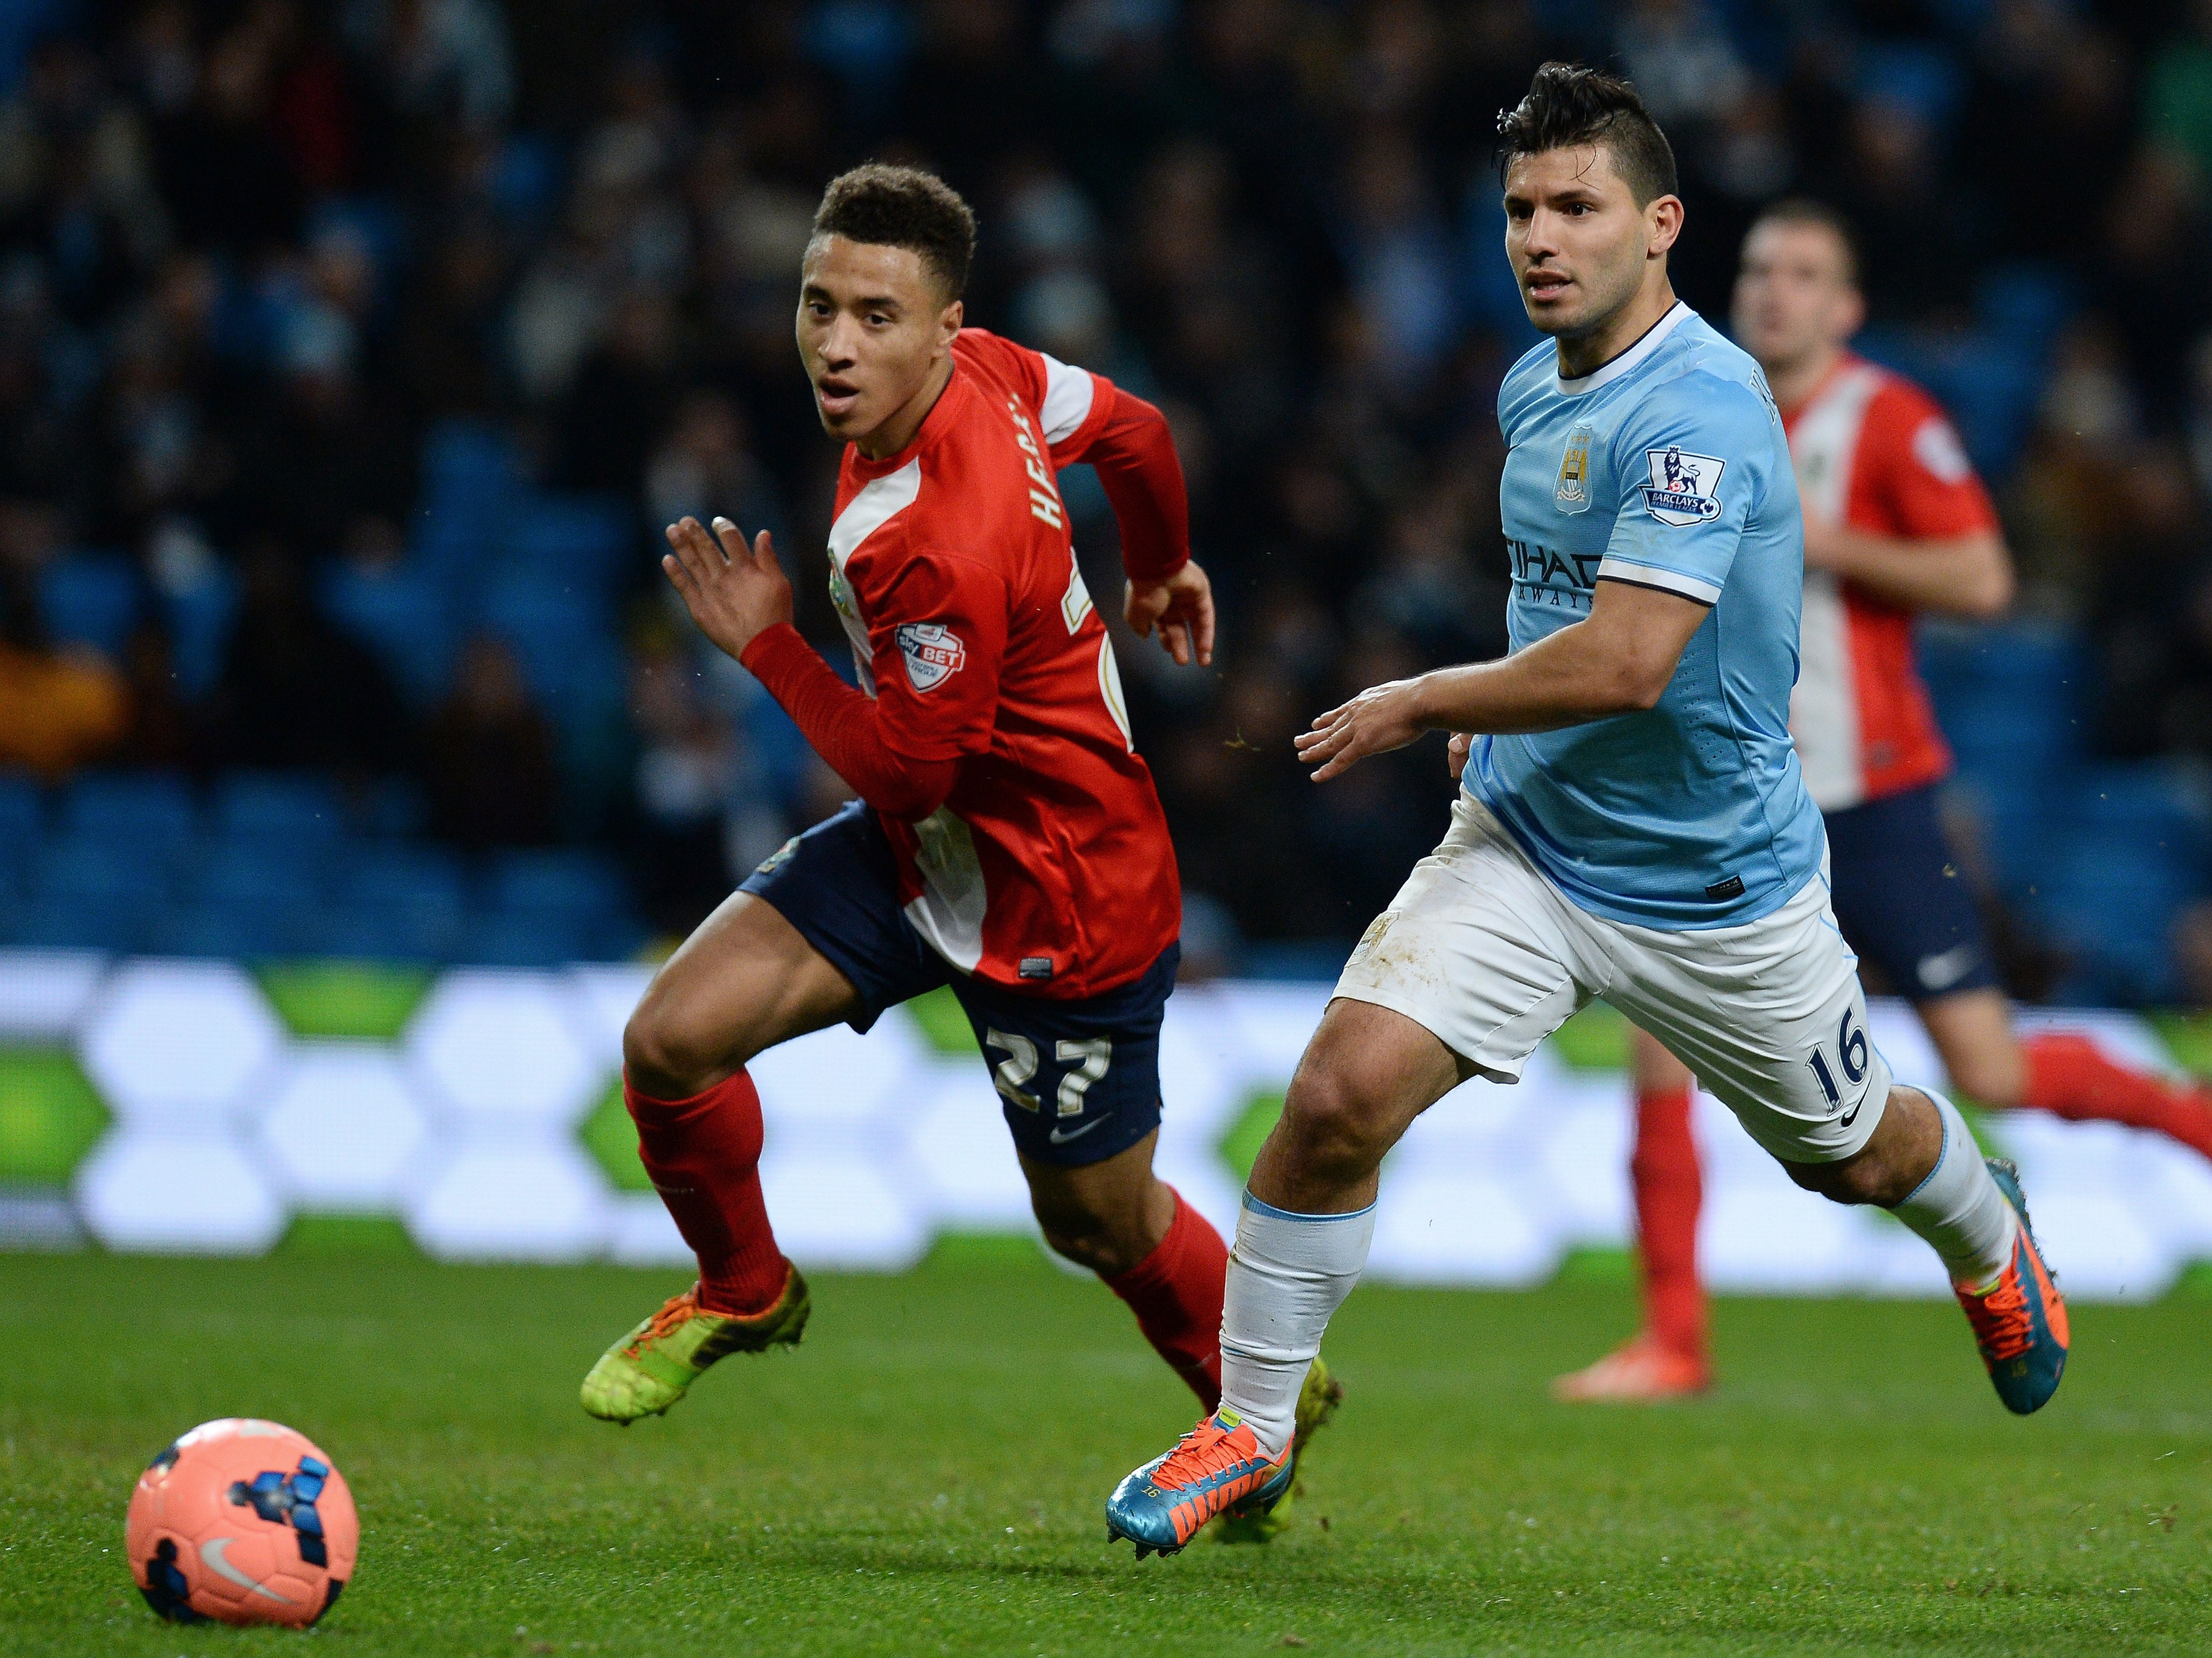 Why Blackburn Rovers fans should not be disappointed if the club stay in the Championship